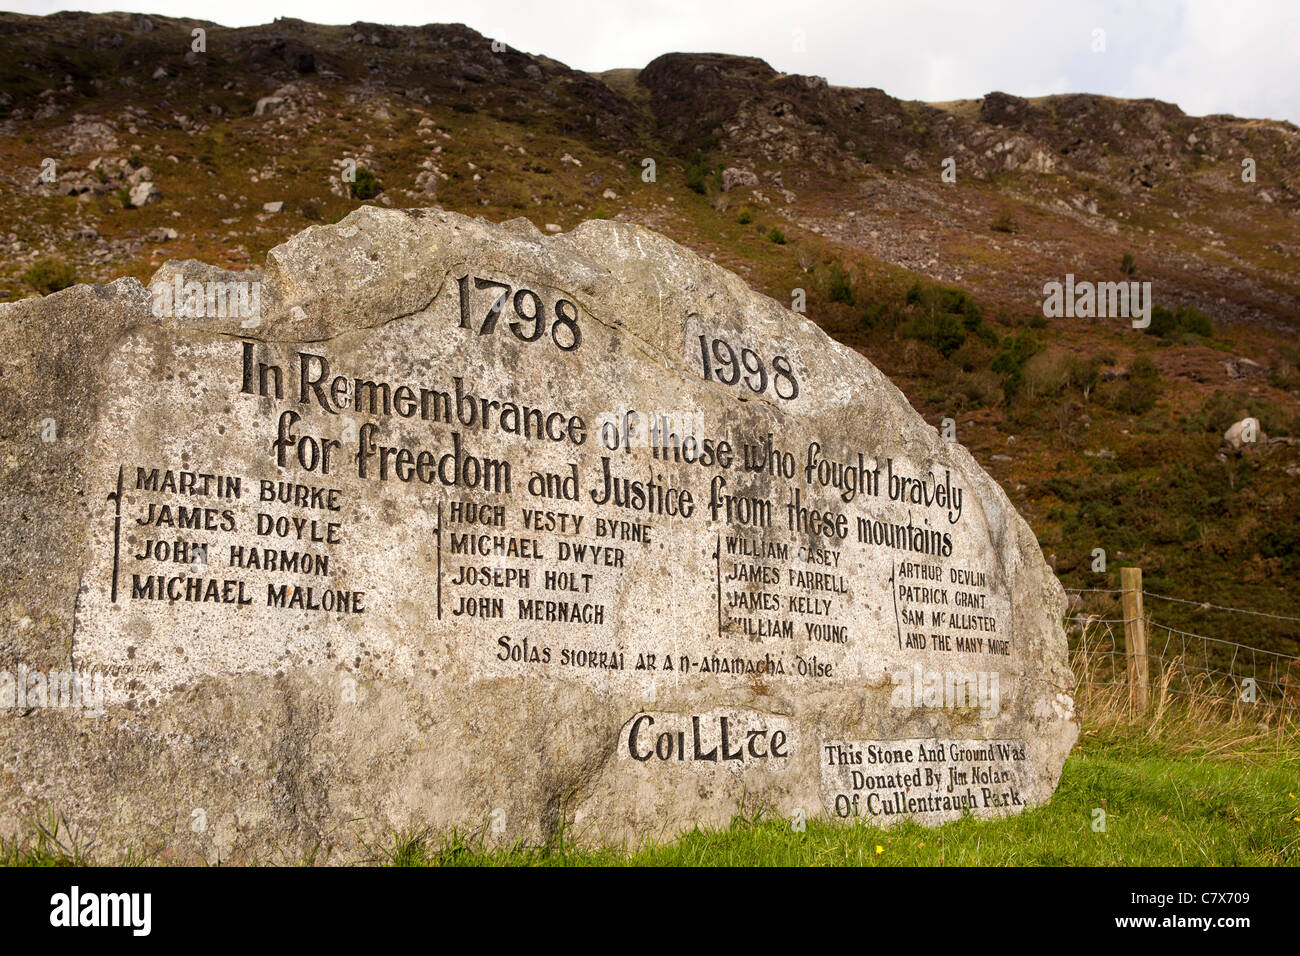 Ireland, Co Wicklow, Glenmalure, memoral stone to local heroes of 1798 rebellion against British rule Stock Photo